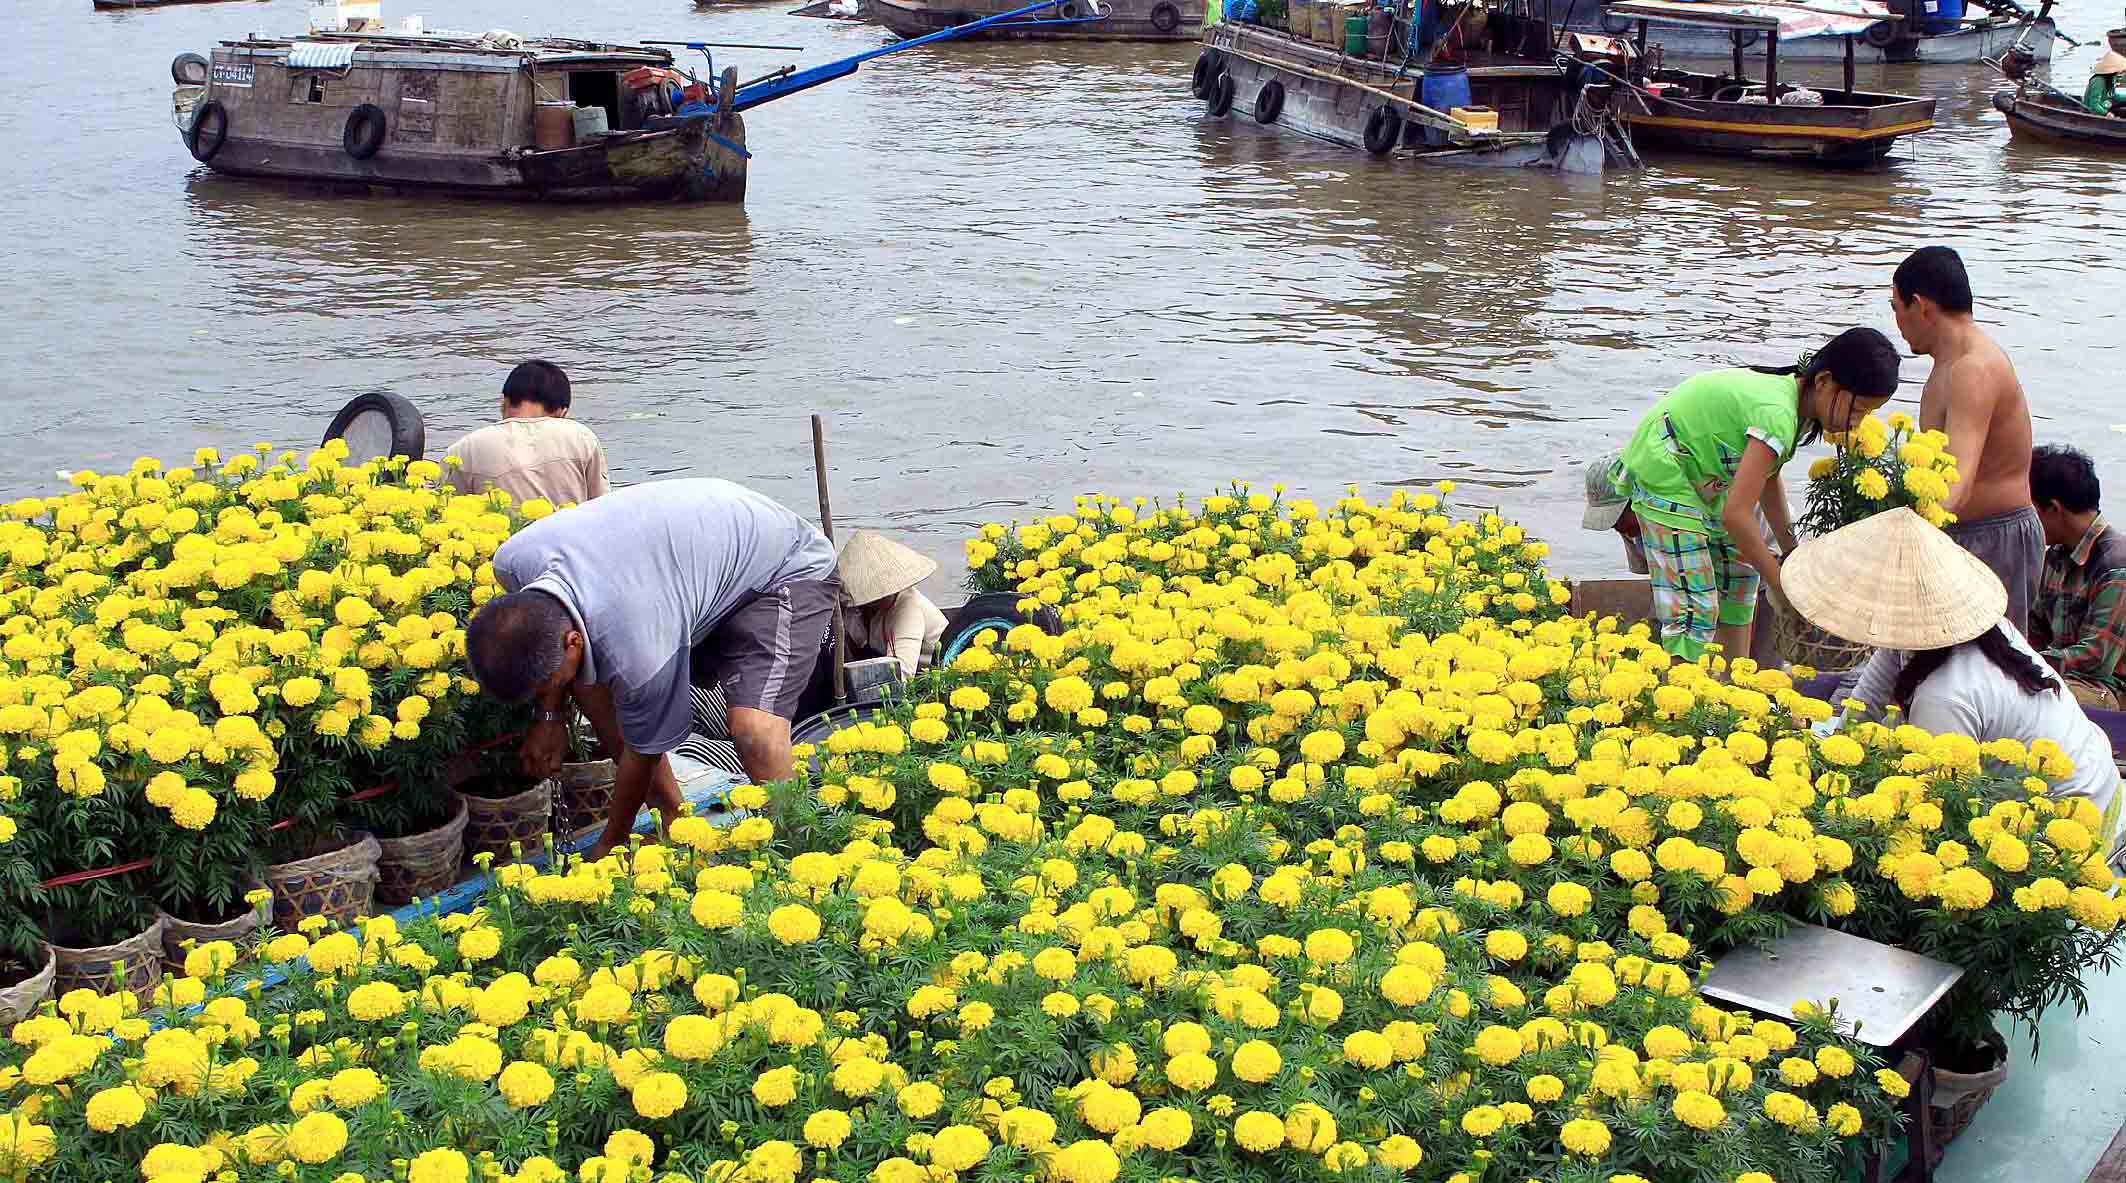 Flower is one of the most popular goods of Cai Be floating market